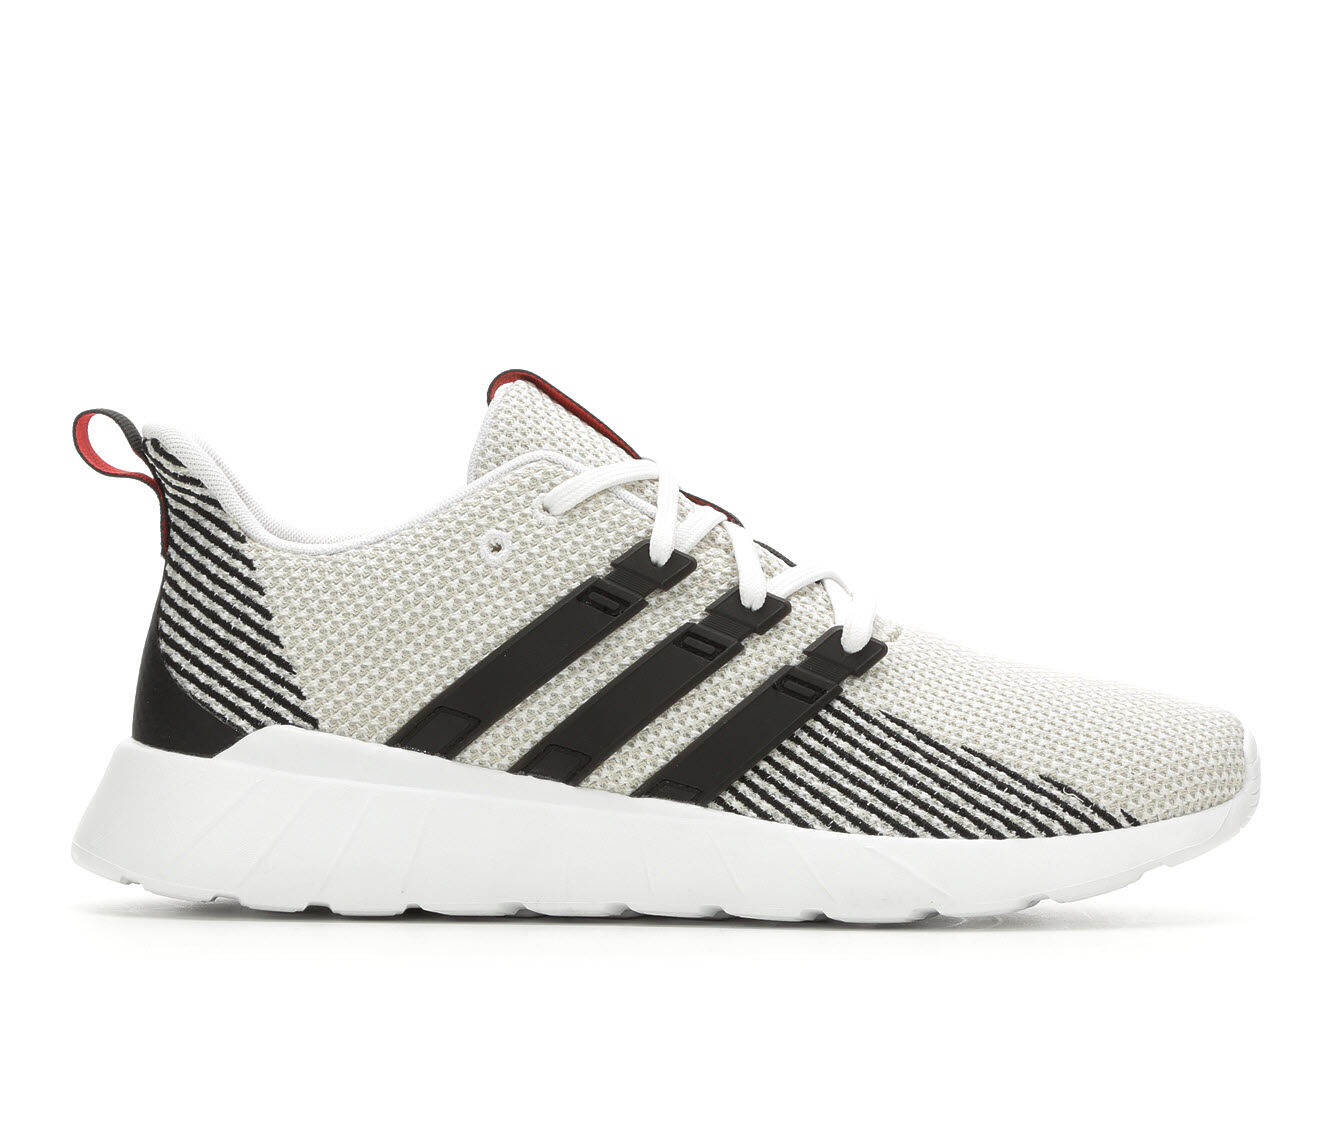 affordable Men's Adidas Questar Flow Running Shoes Wht/Blk/Wht